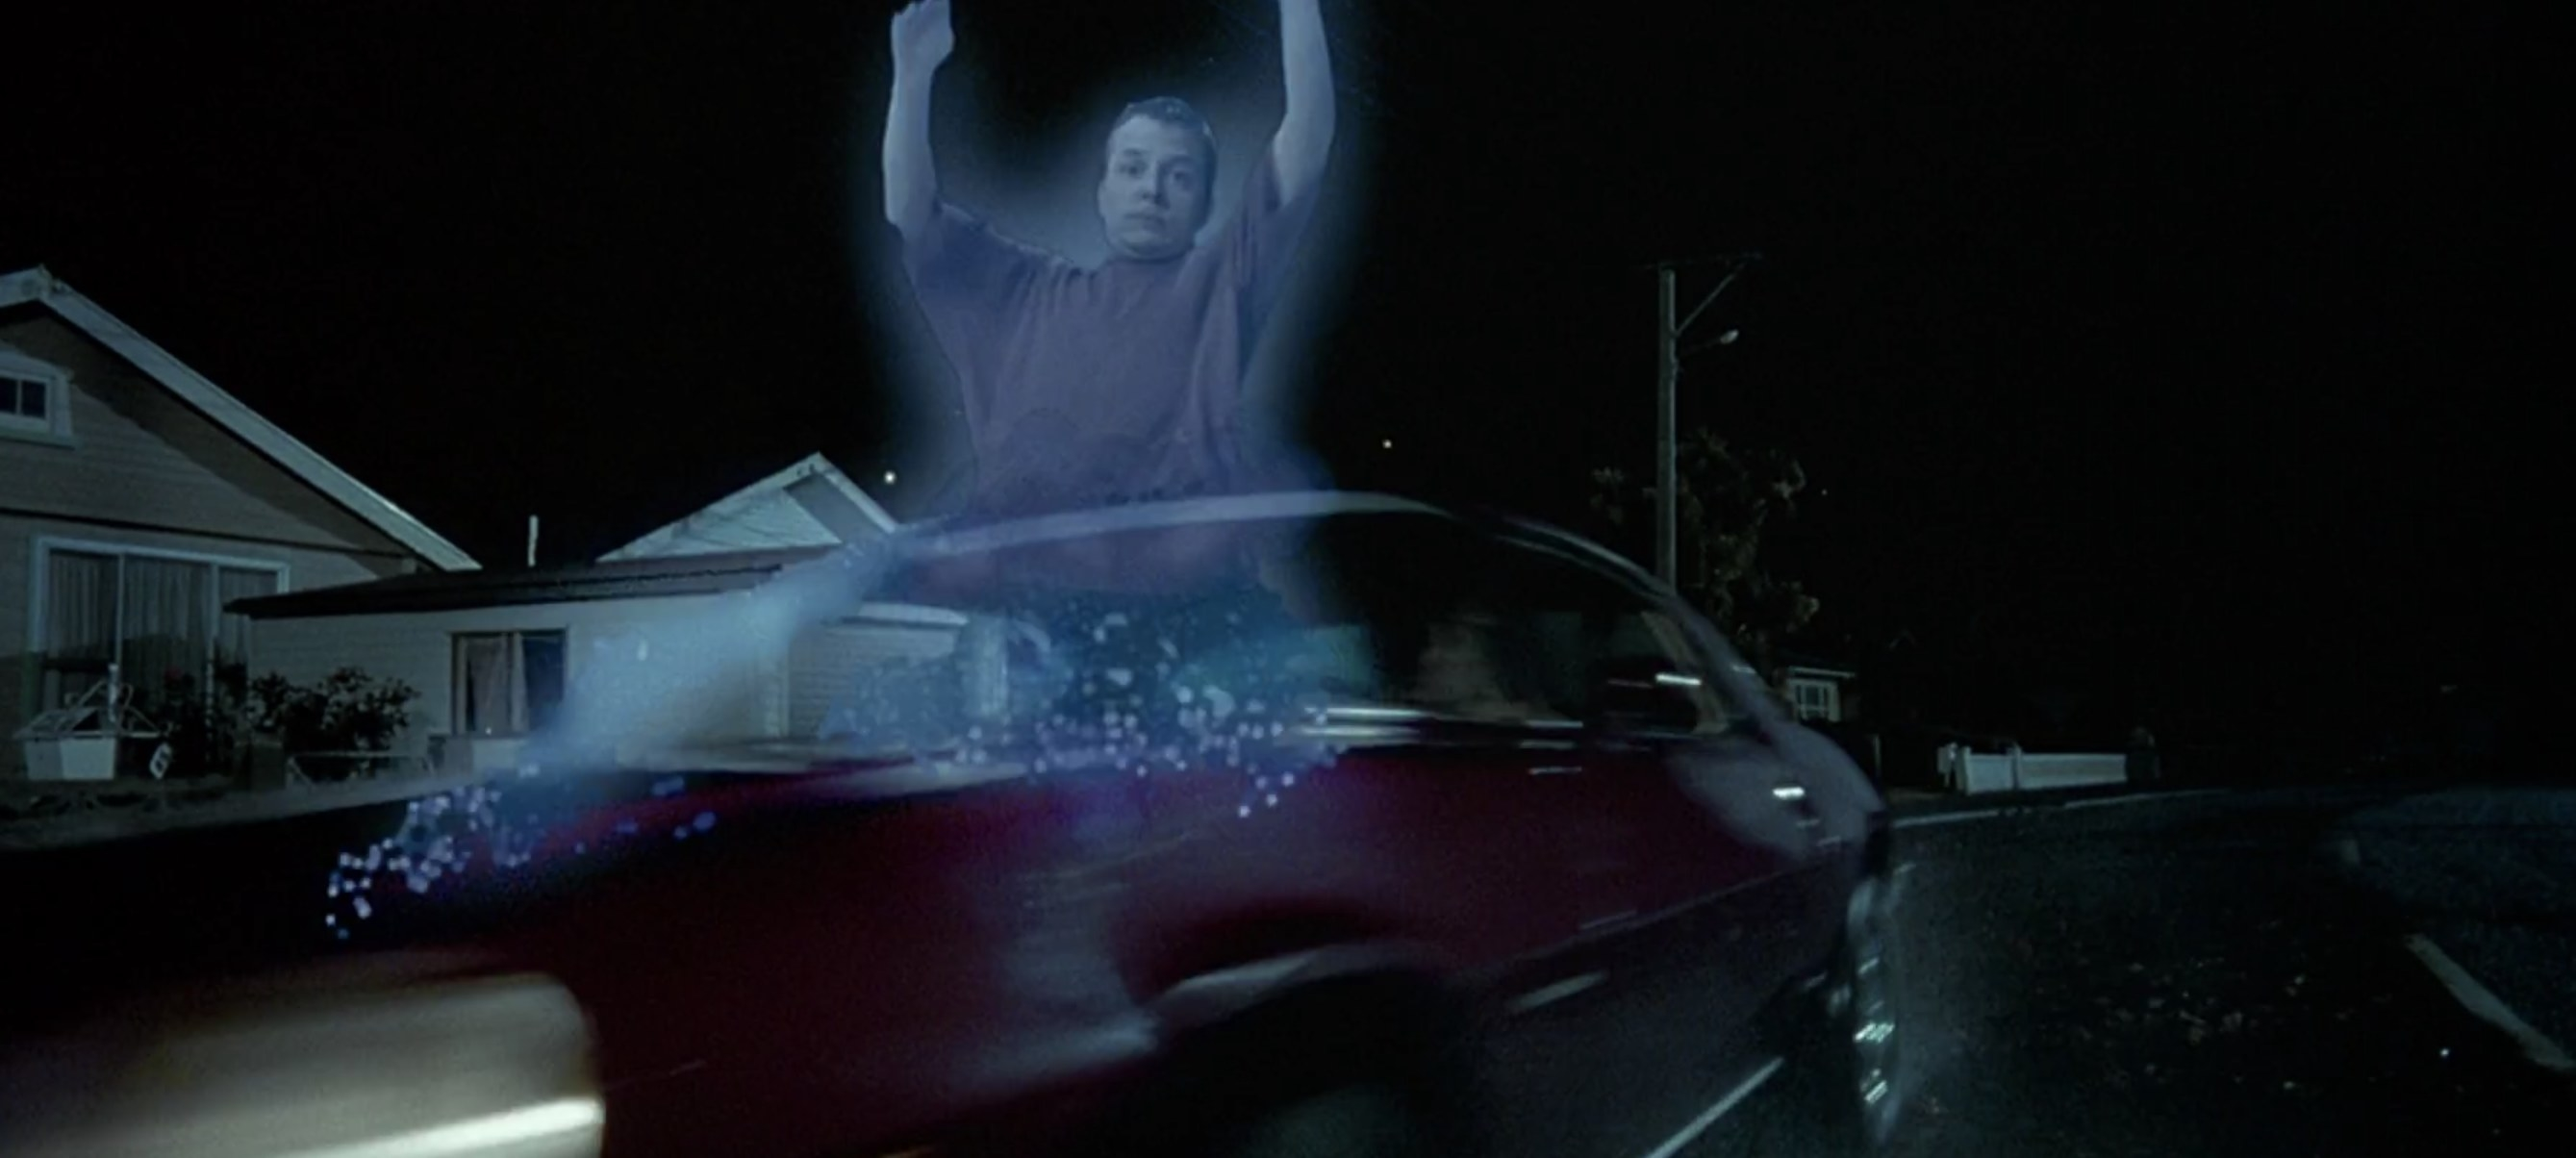 A ghost being run over by a car